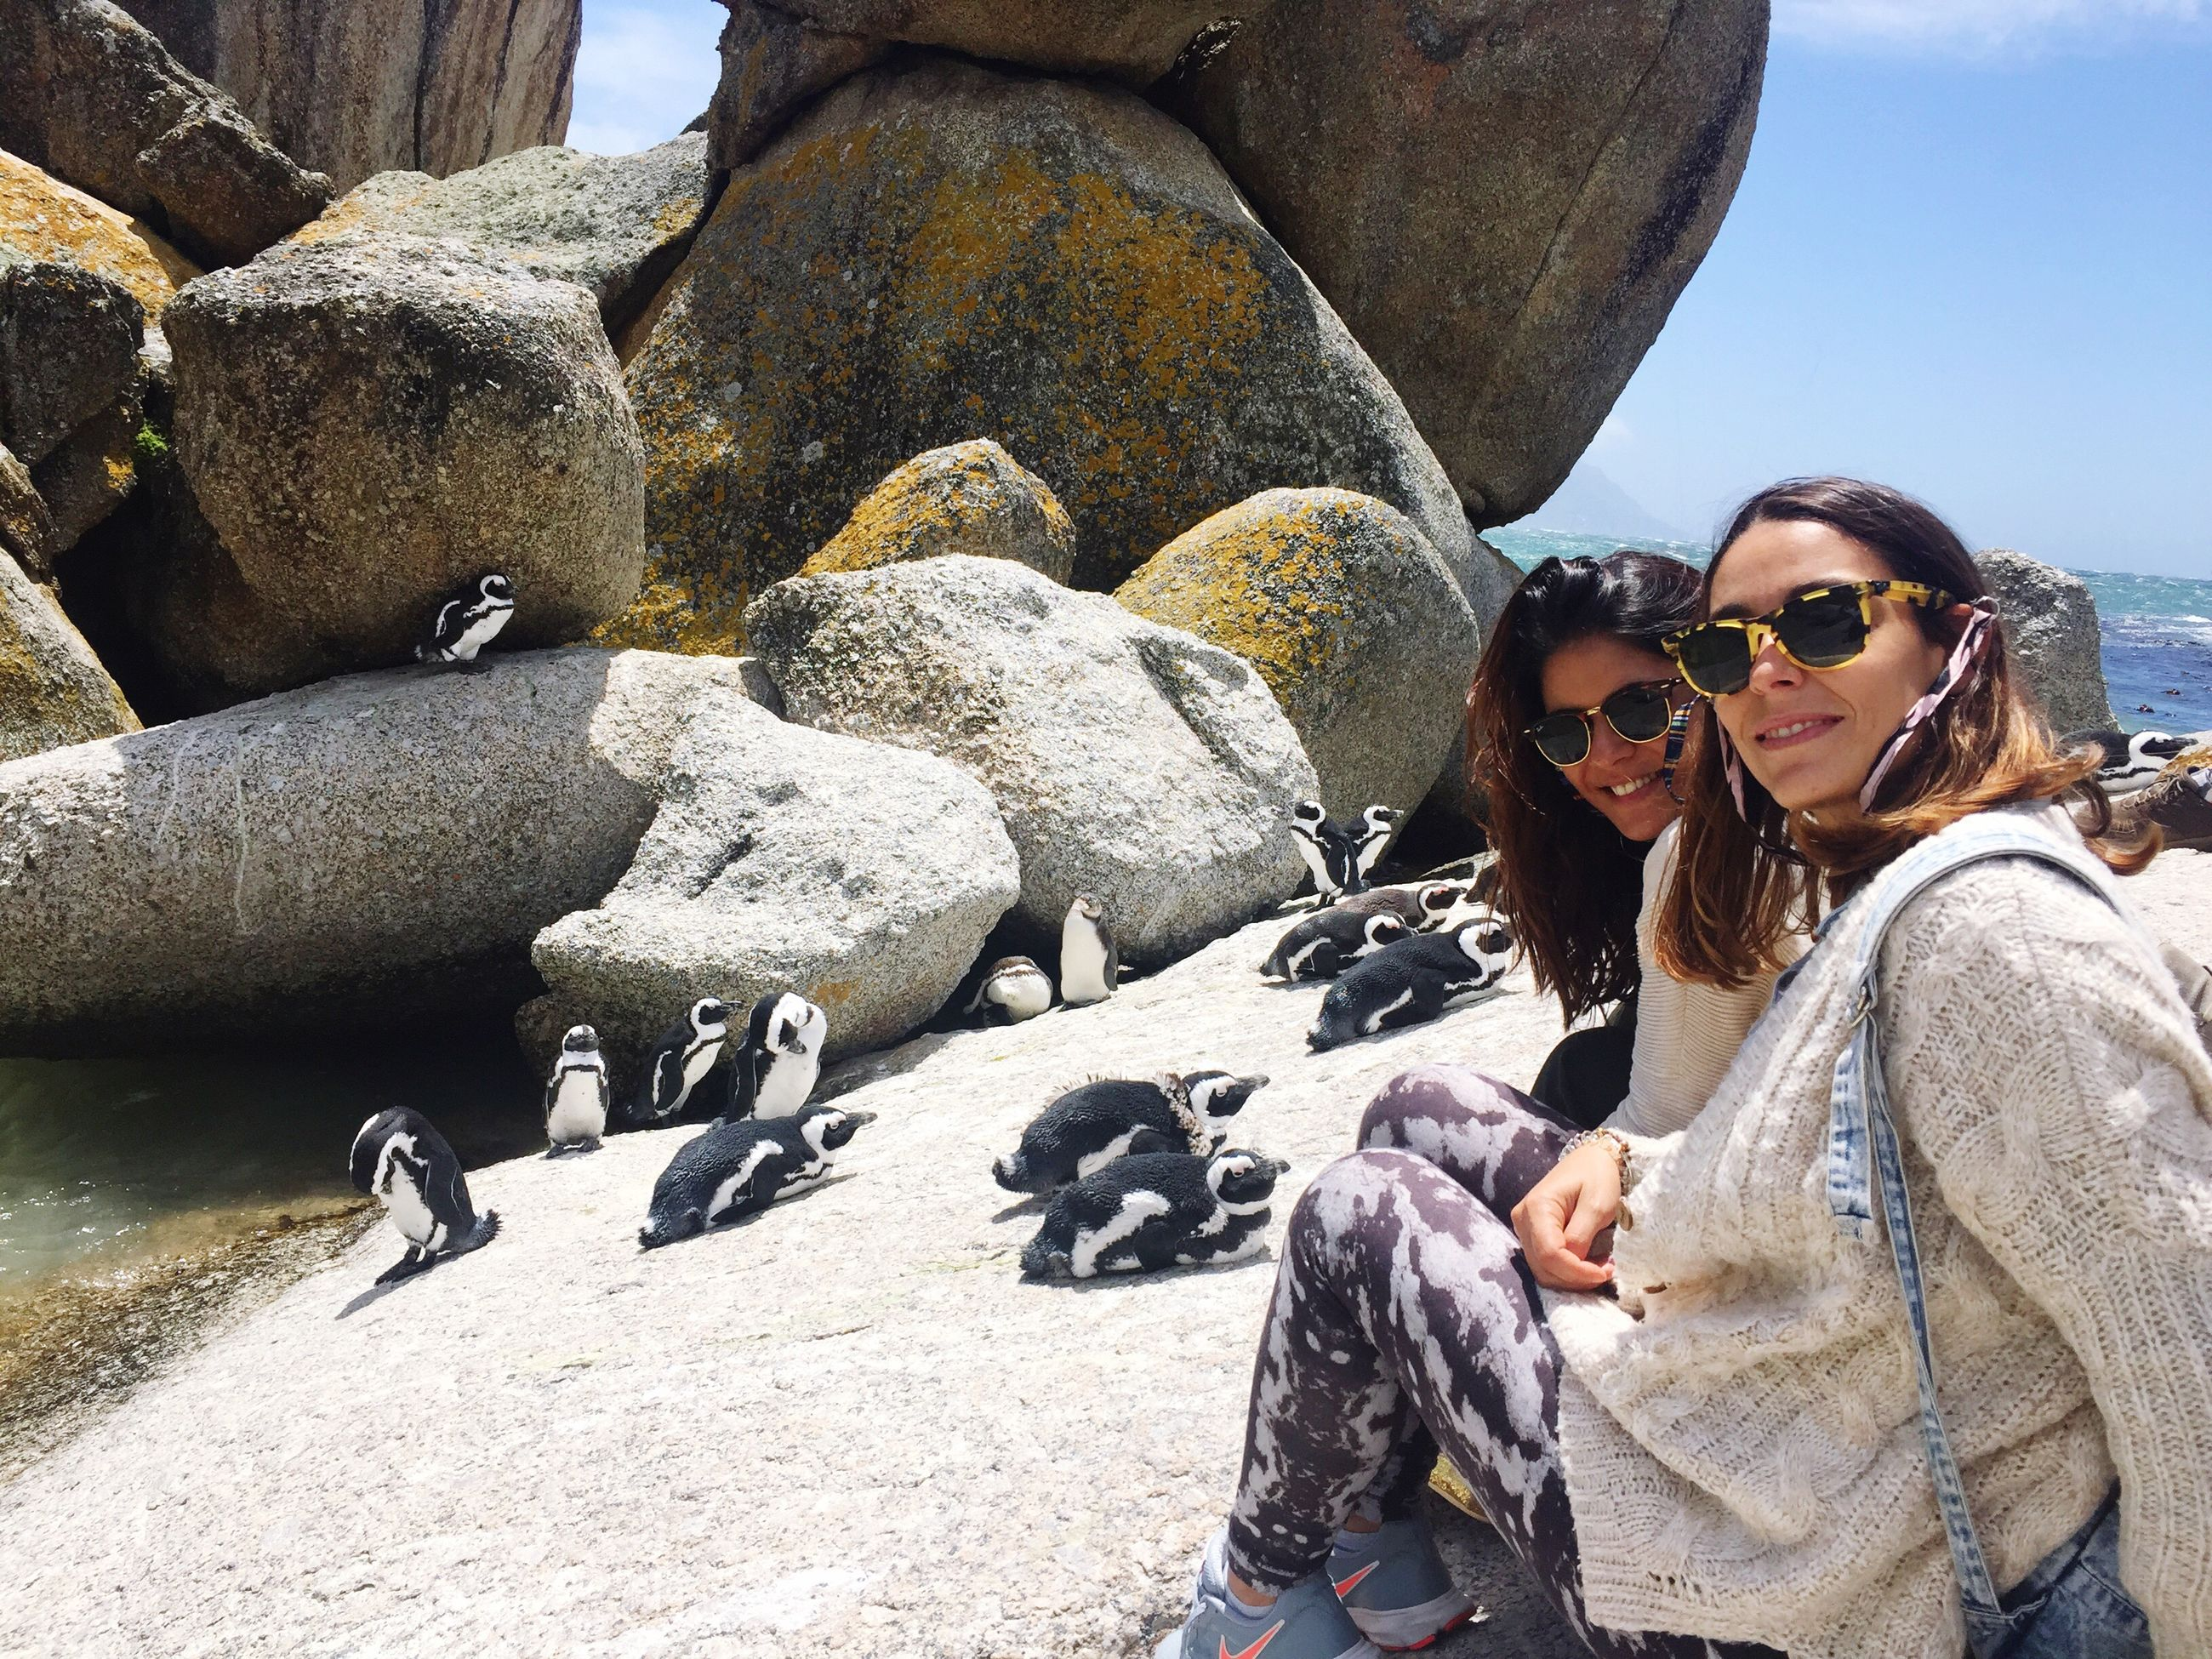 togetherness, young adult, friendship, two people, elephant, portrait, young women, happiness, sunglasses, bonding, beach, vacations, adults only, people, outdoors, adult, women, sand, smiling, day, sky, only women, mammal